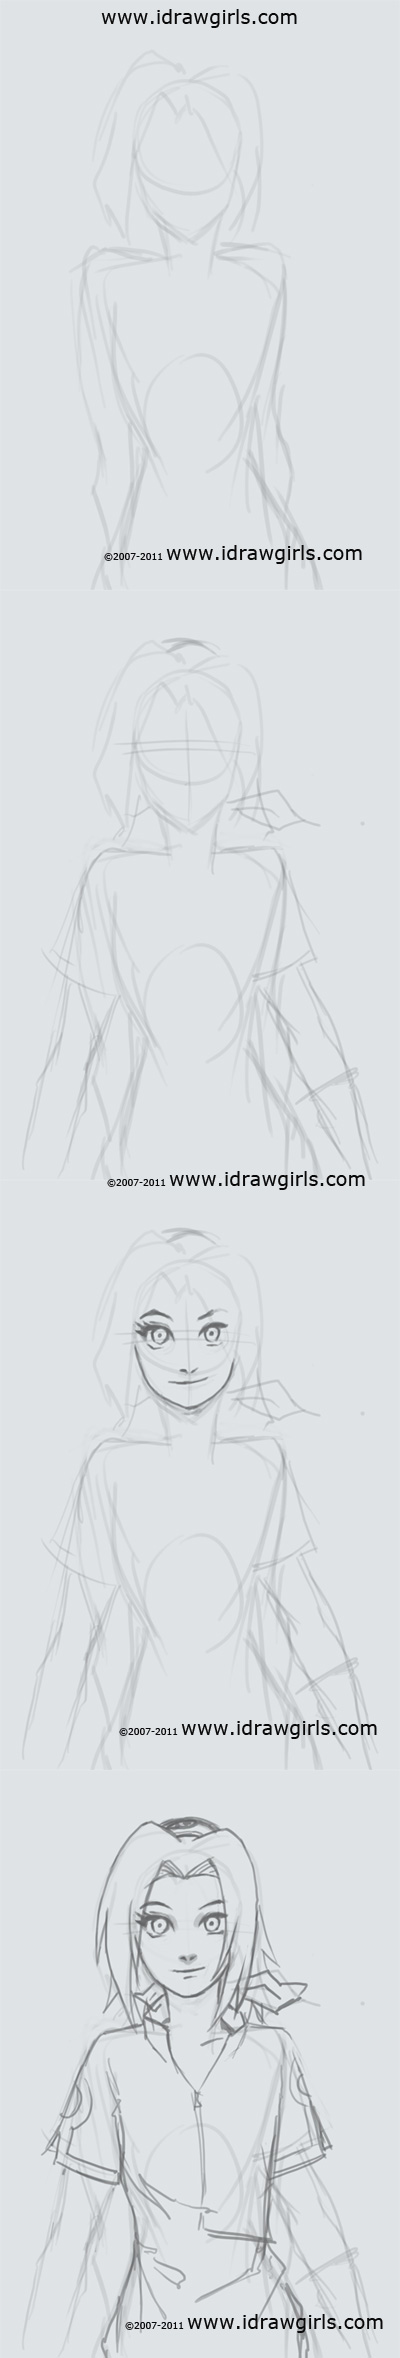 how to draw sakura naruto basic How to draw Sakura Haruno